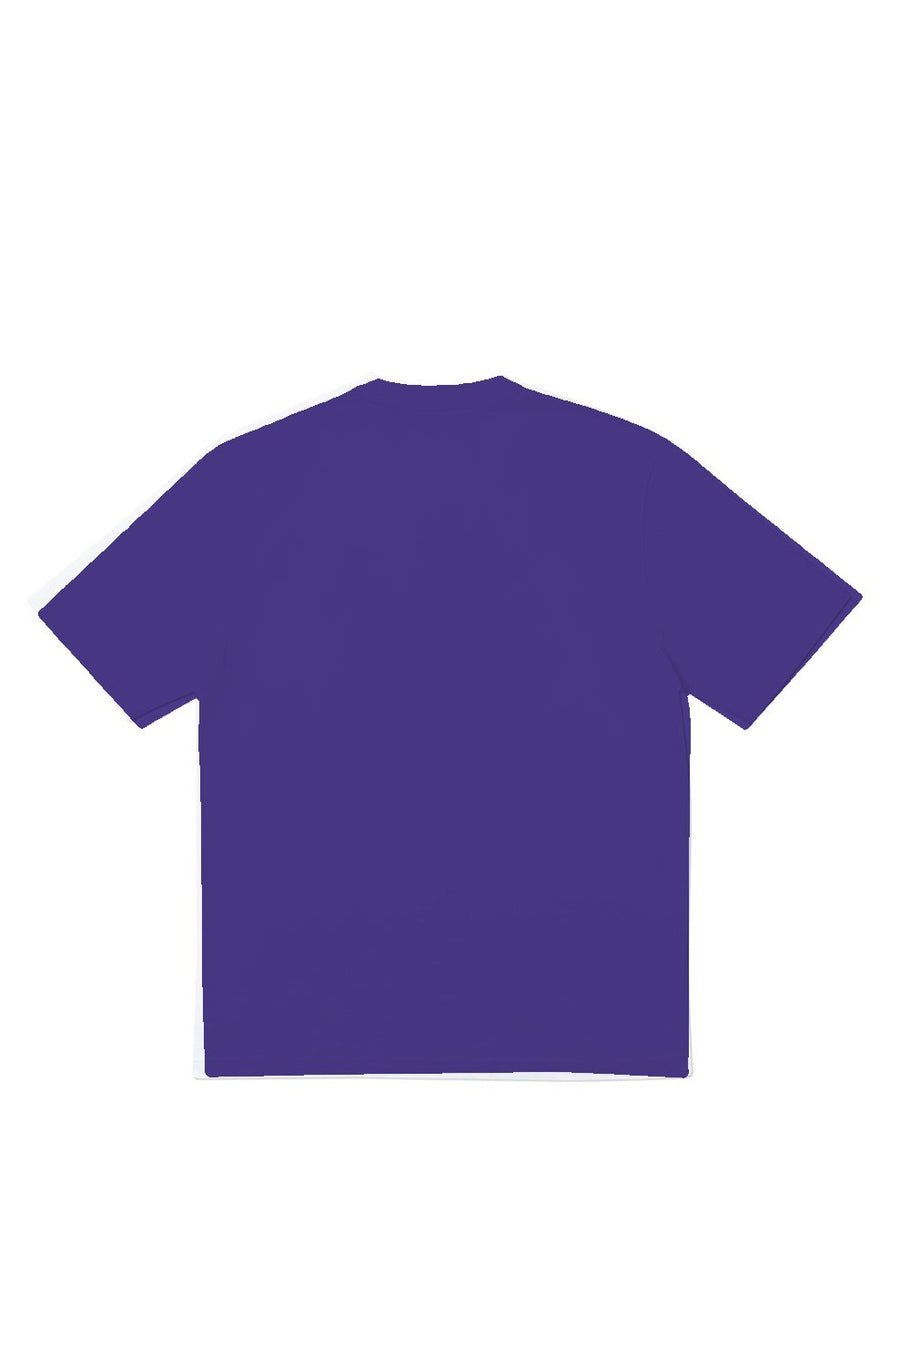 Camisetas Camiseta Purple Creepy